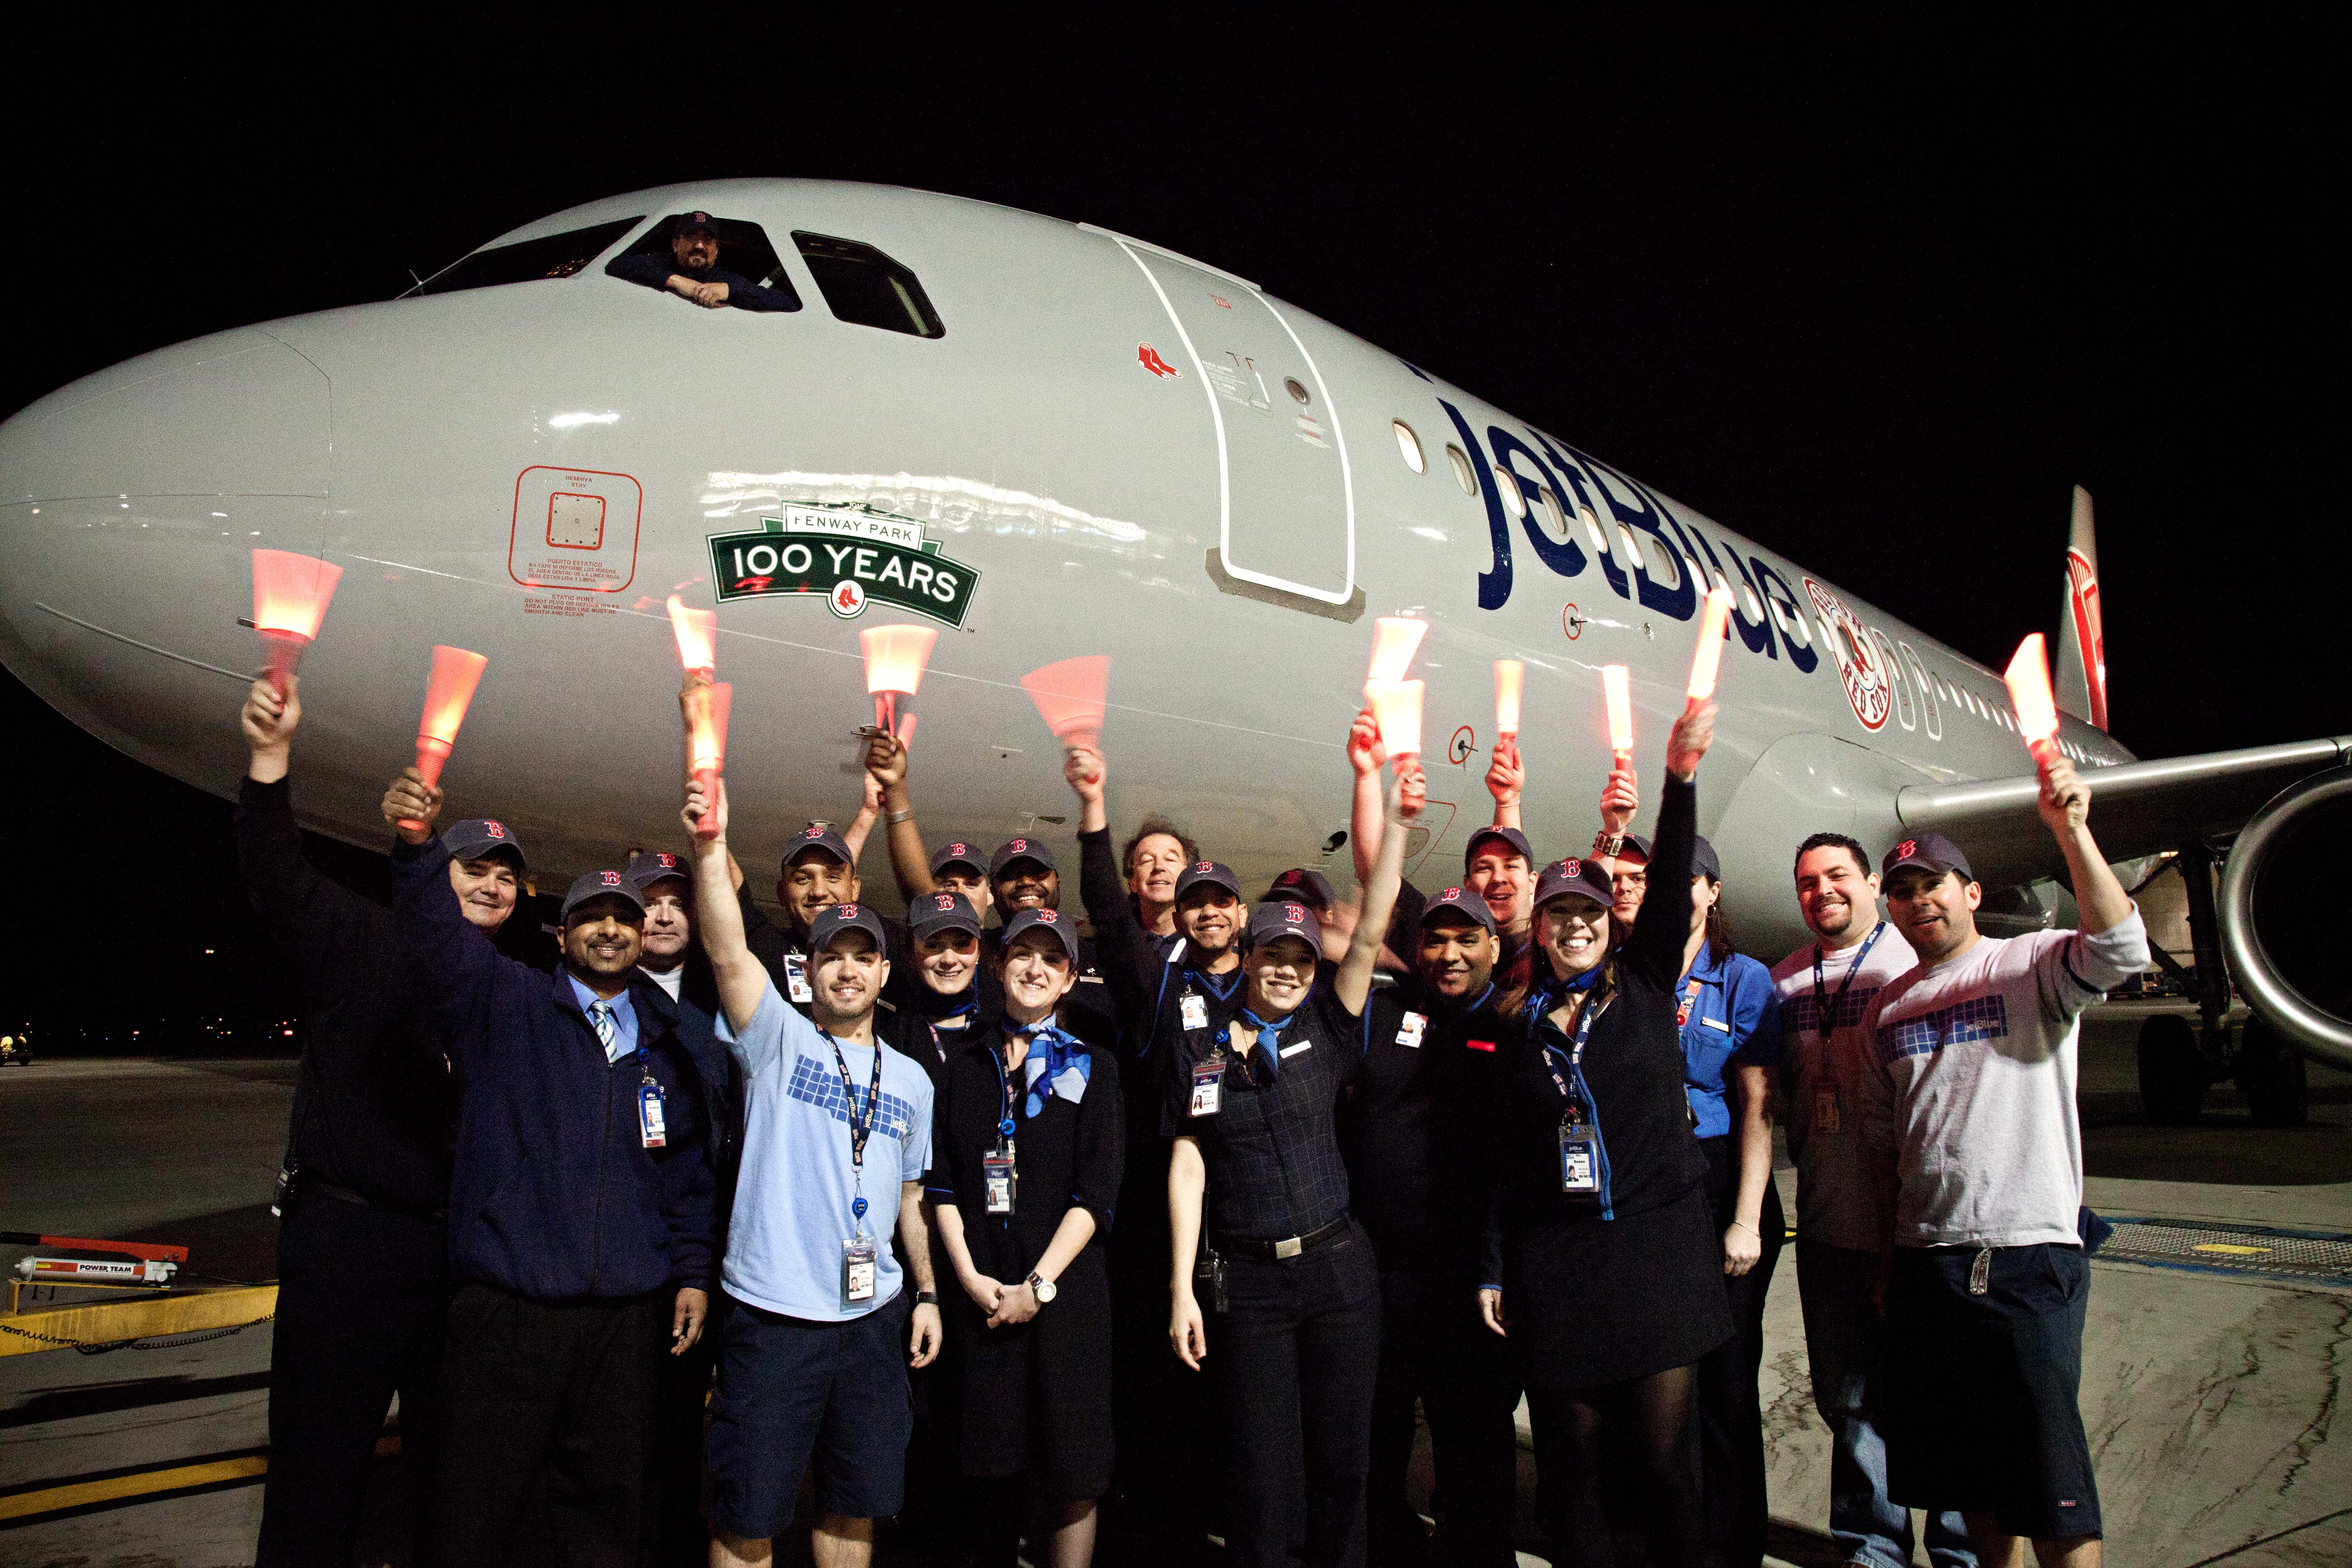 JetBlue Celebrates Fenway Park's 100-Year Anniversary With Red Sox-Themed Plane (Photo)